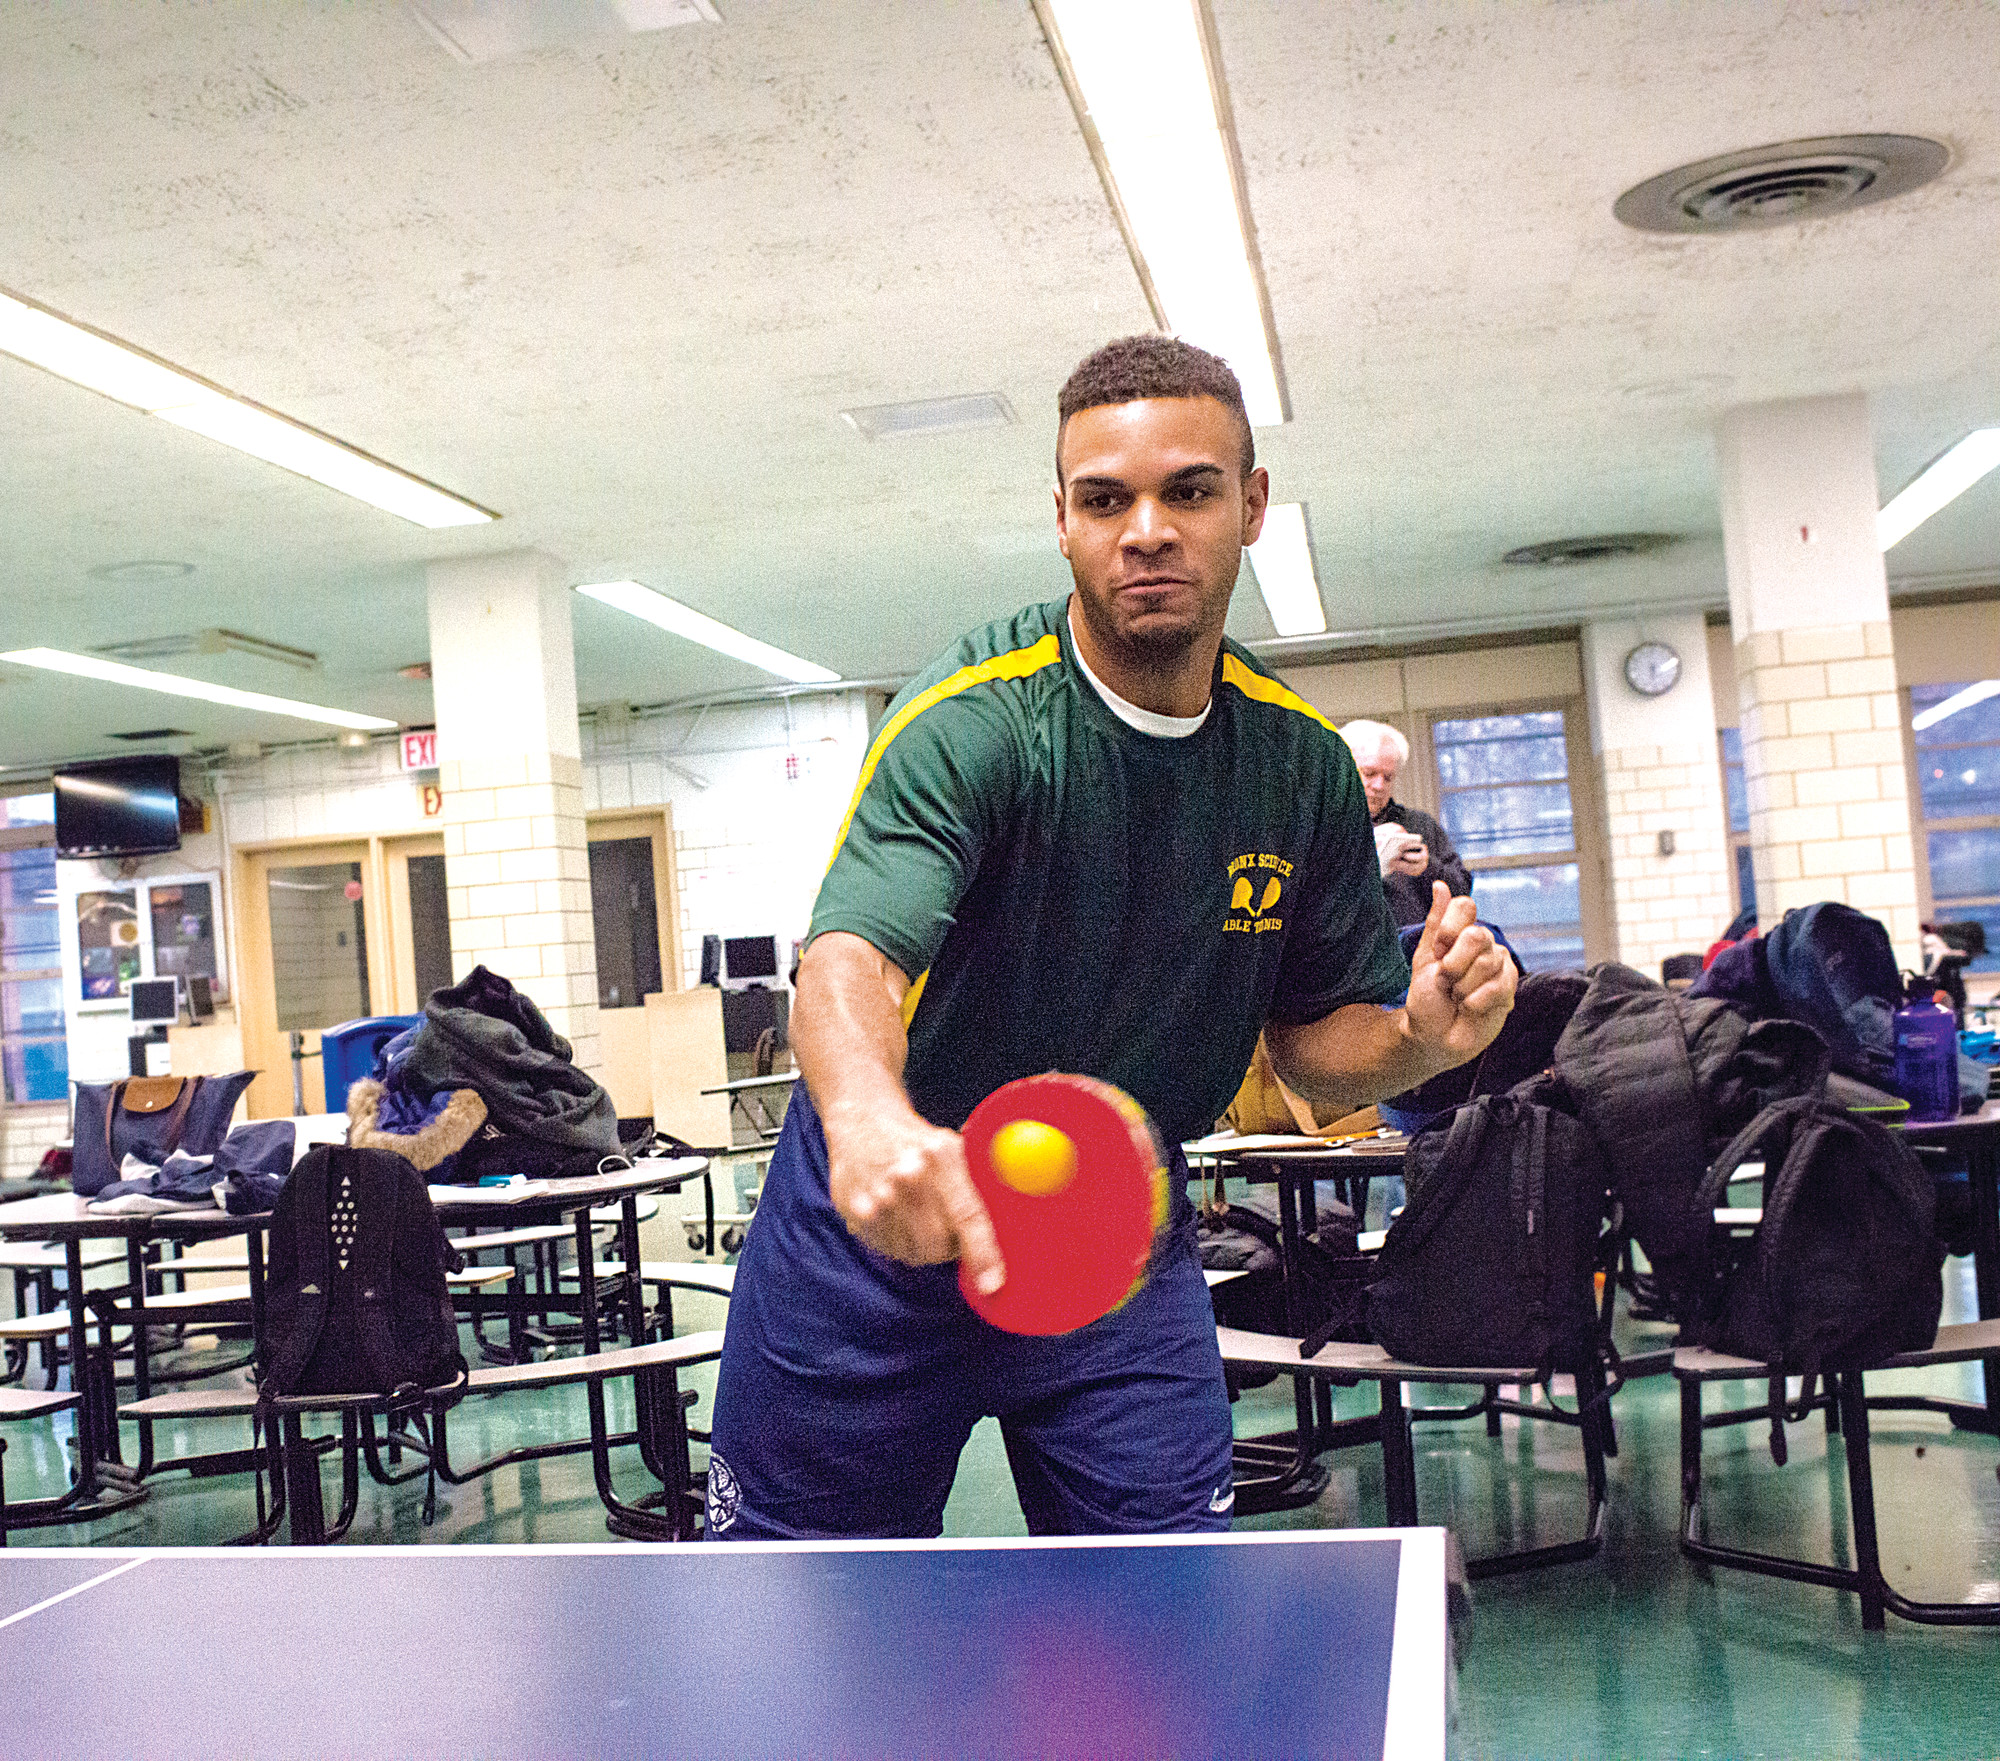 Squad nails the science of table tennis | The Riverdale Press ...